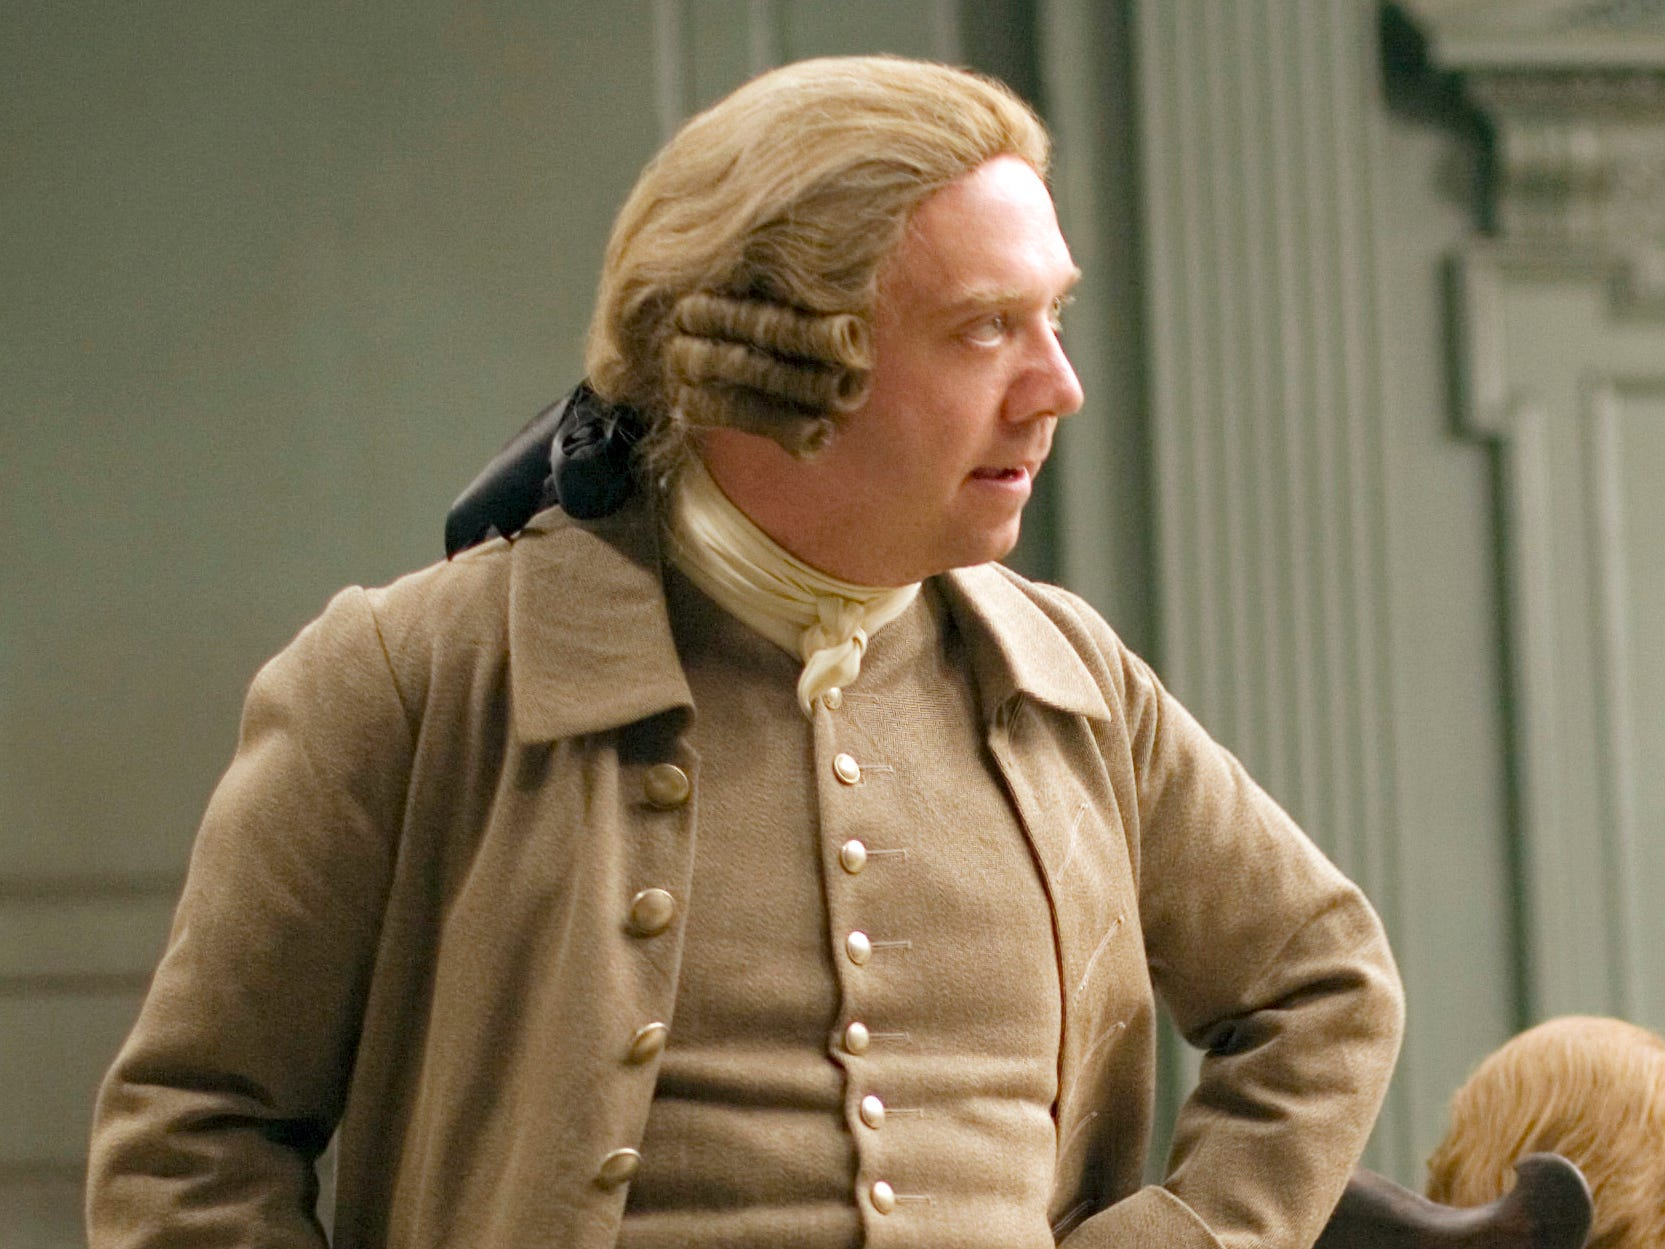 """John Adams"" (HBO, 2008): Based on the book by David McCullough, the miniseries follows John Adams (Paul Giamatti) as he navigates the politics of the birth of a new nation as one of its Founding Fathers."